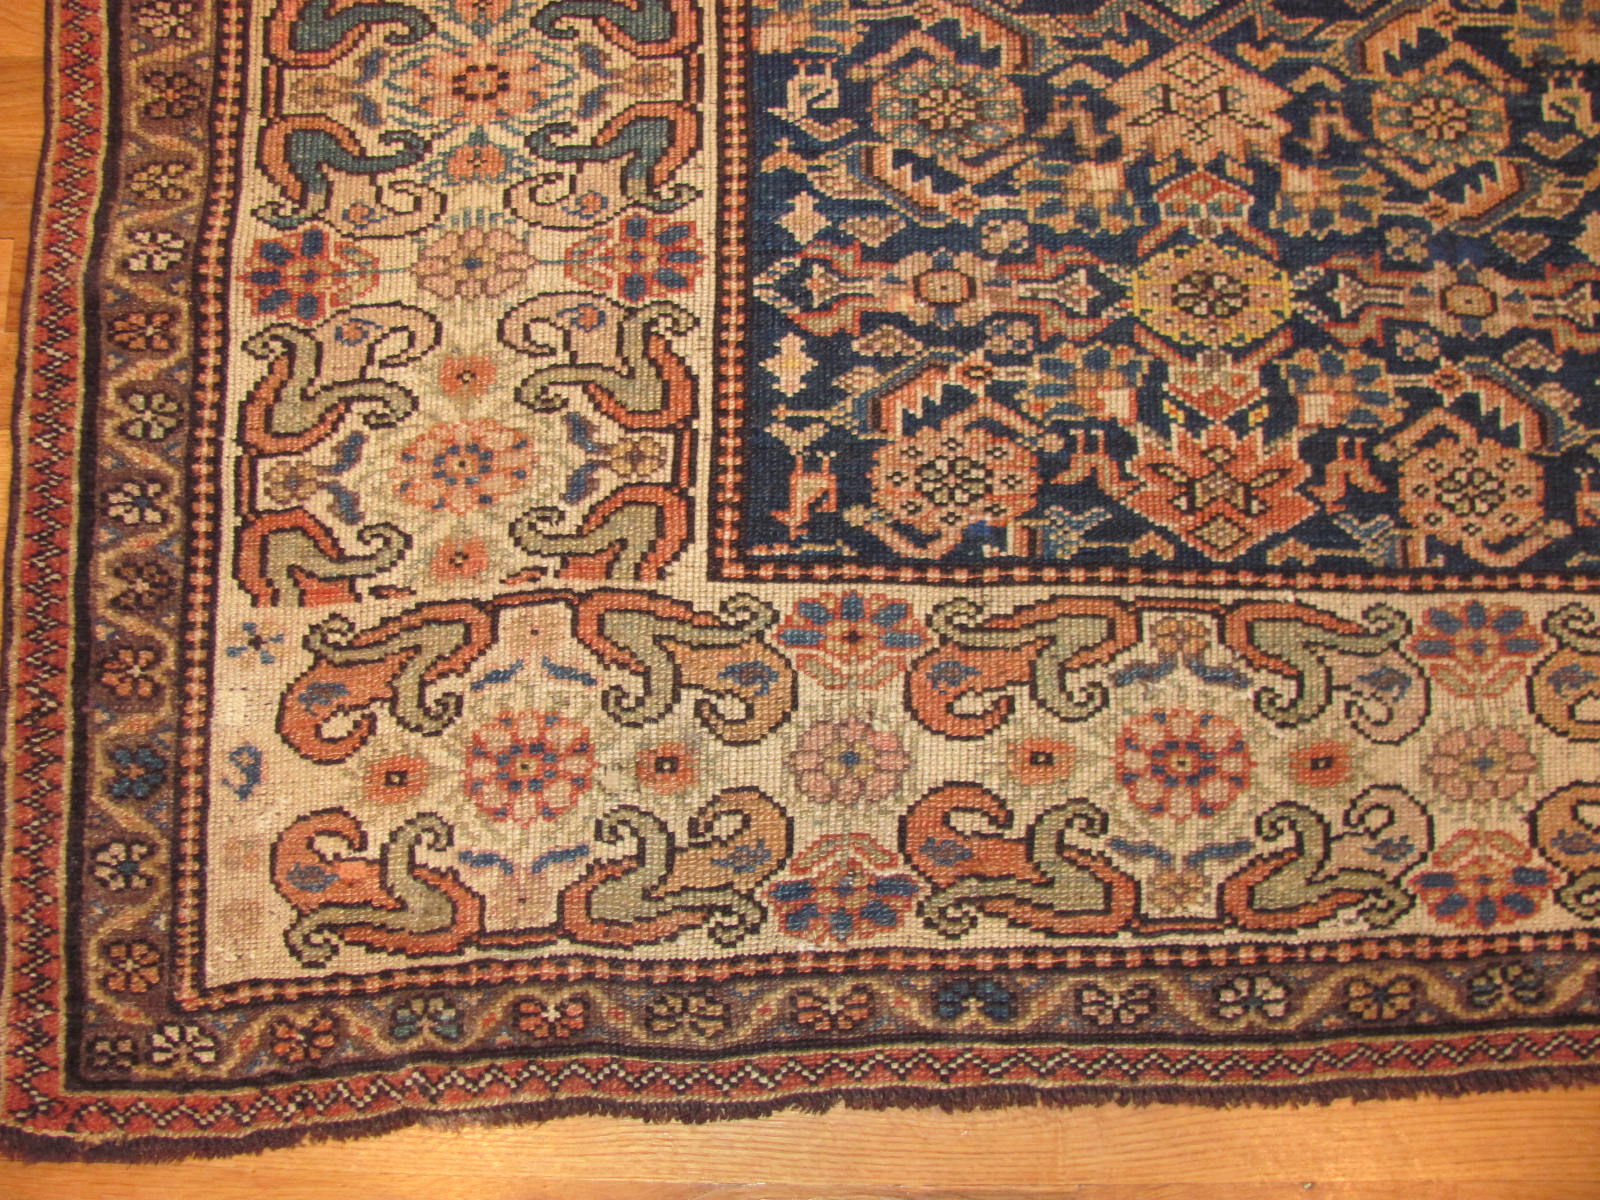 24585 antique persian kurdish rug 4,6 x 6,3 -2